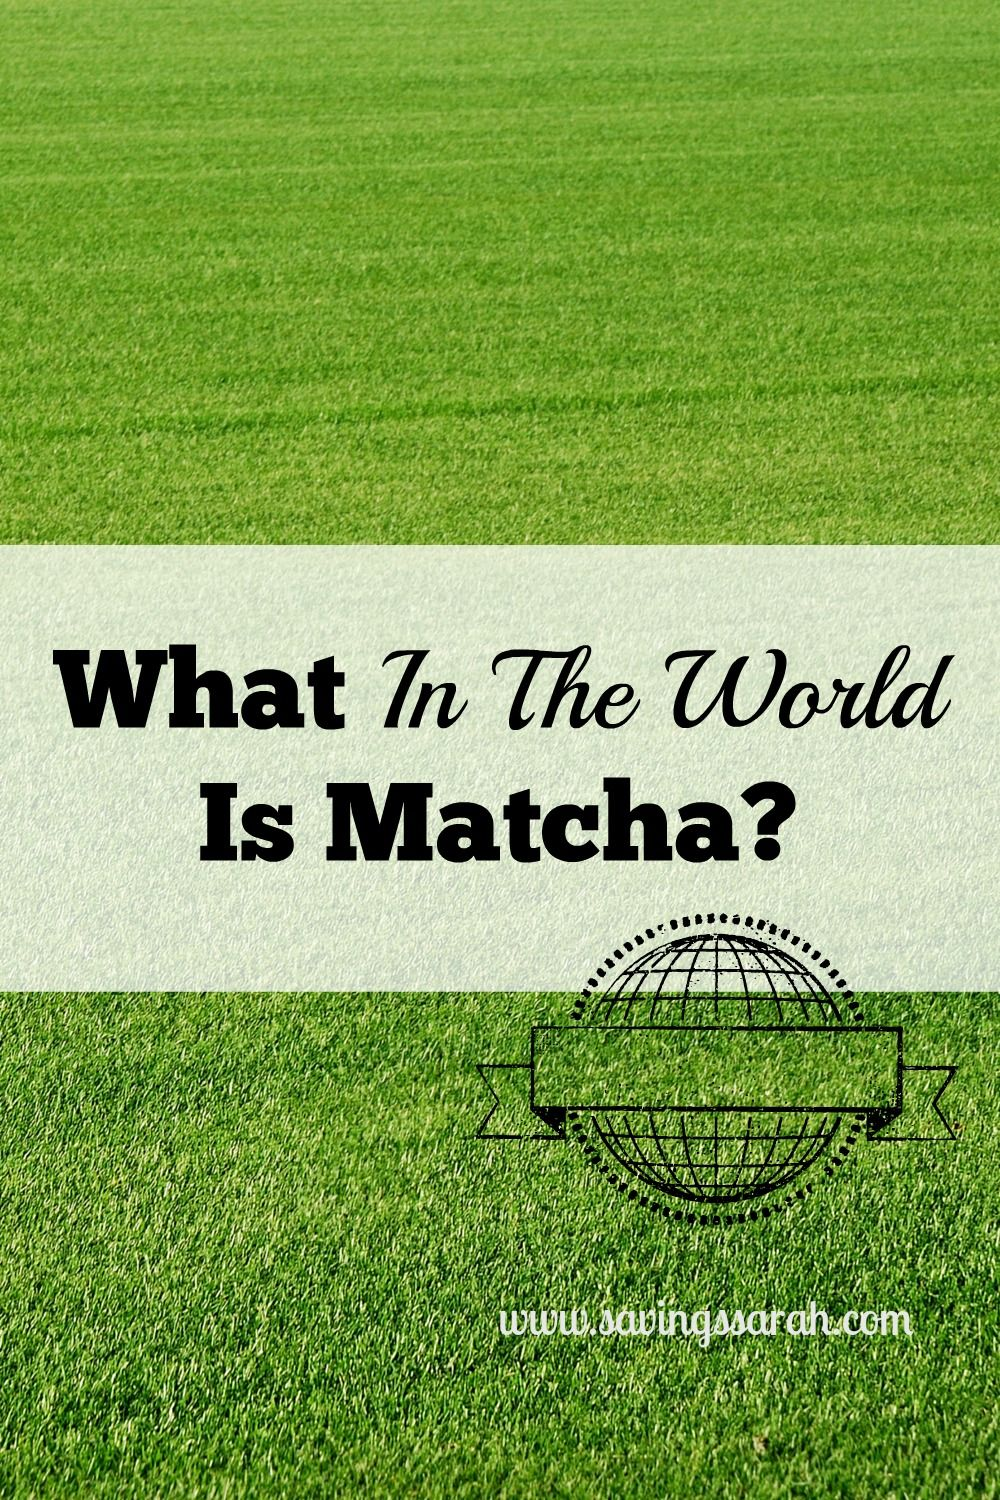 What in the World is Matcha? | Earning and Saving with Sarah